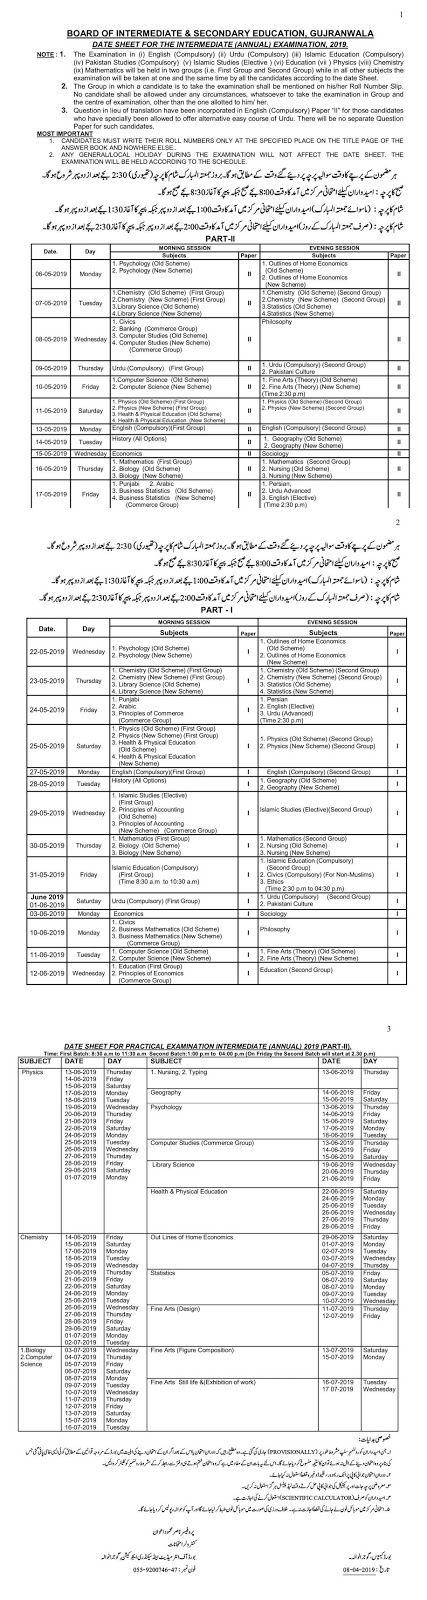 Inter Part.1 &2 -1st Year and 2nd Year Annual 2019 Exams Date Sheets BISE Gujranwala